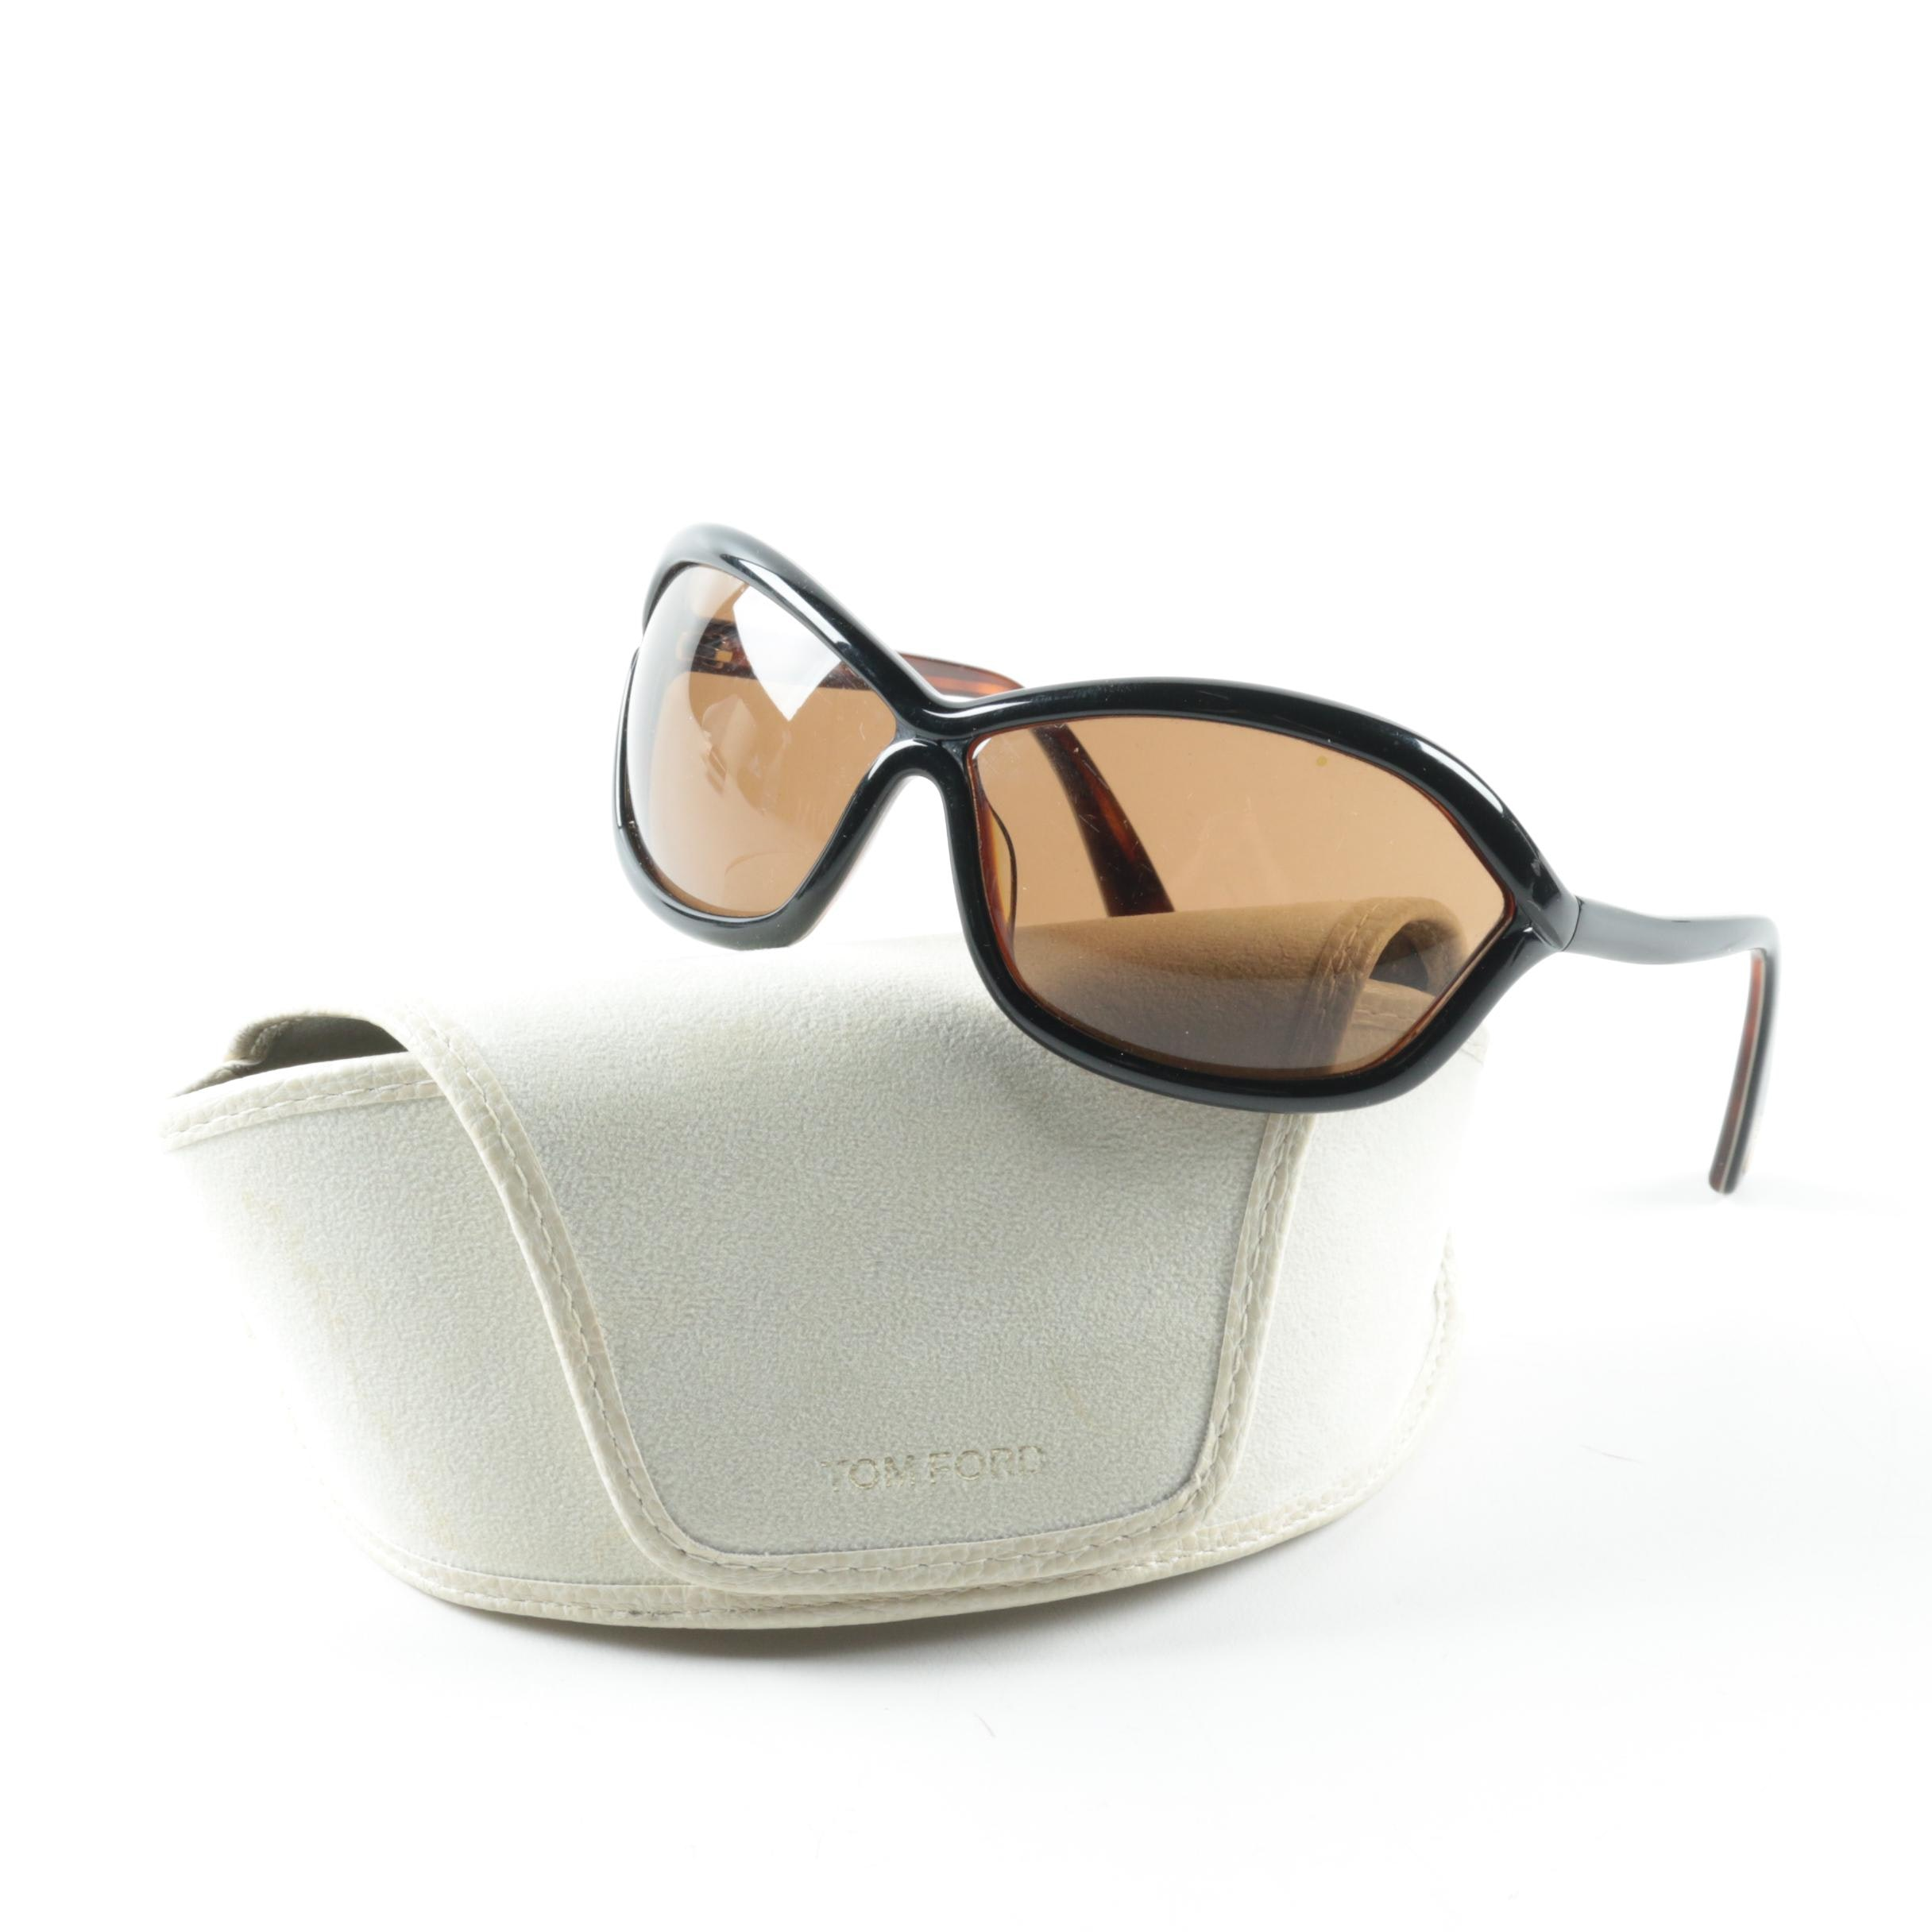 Tom Ford Patek Oversized Sunglasses with Case